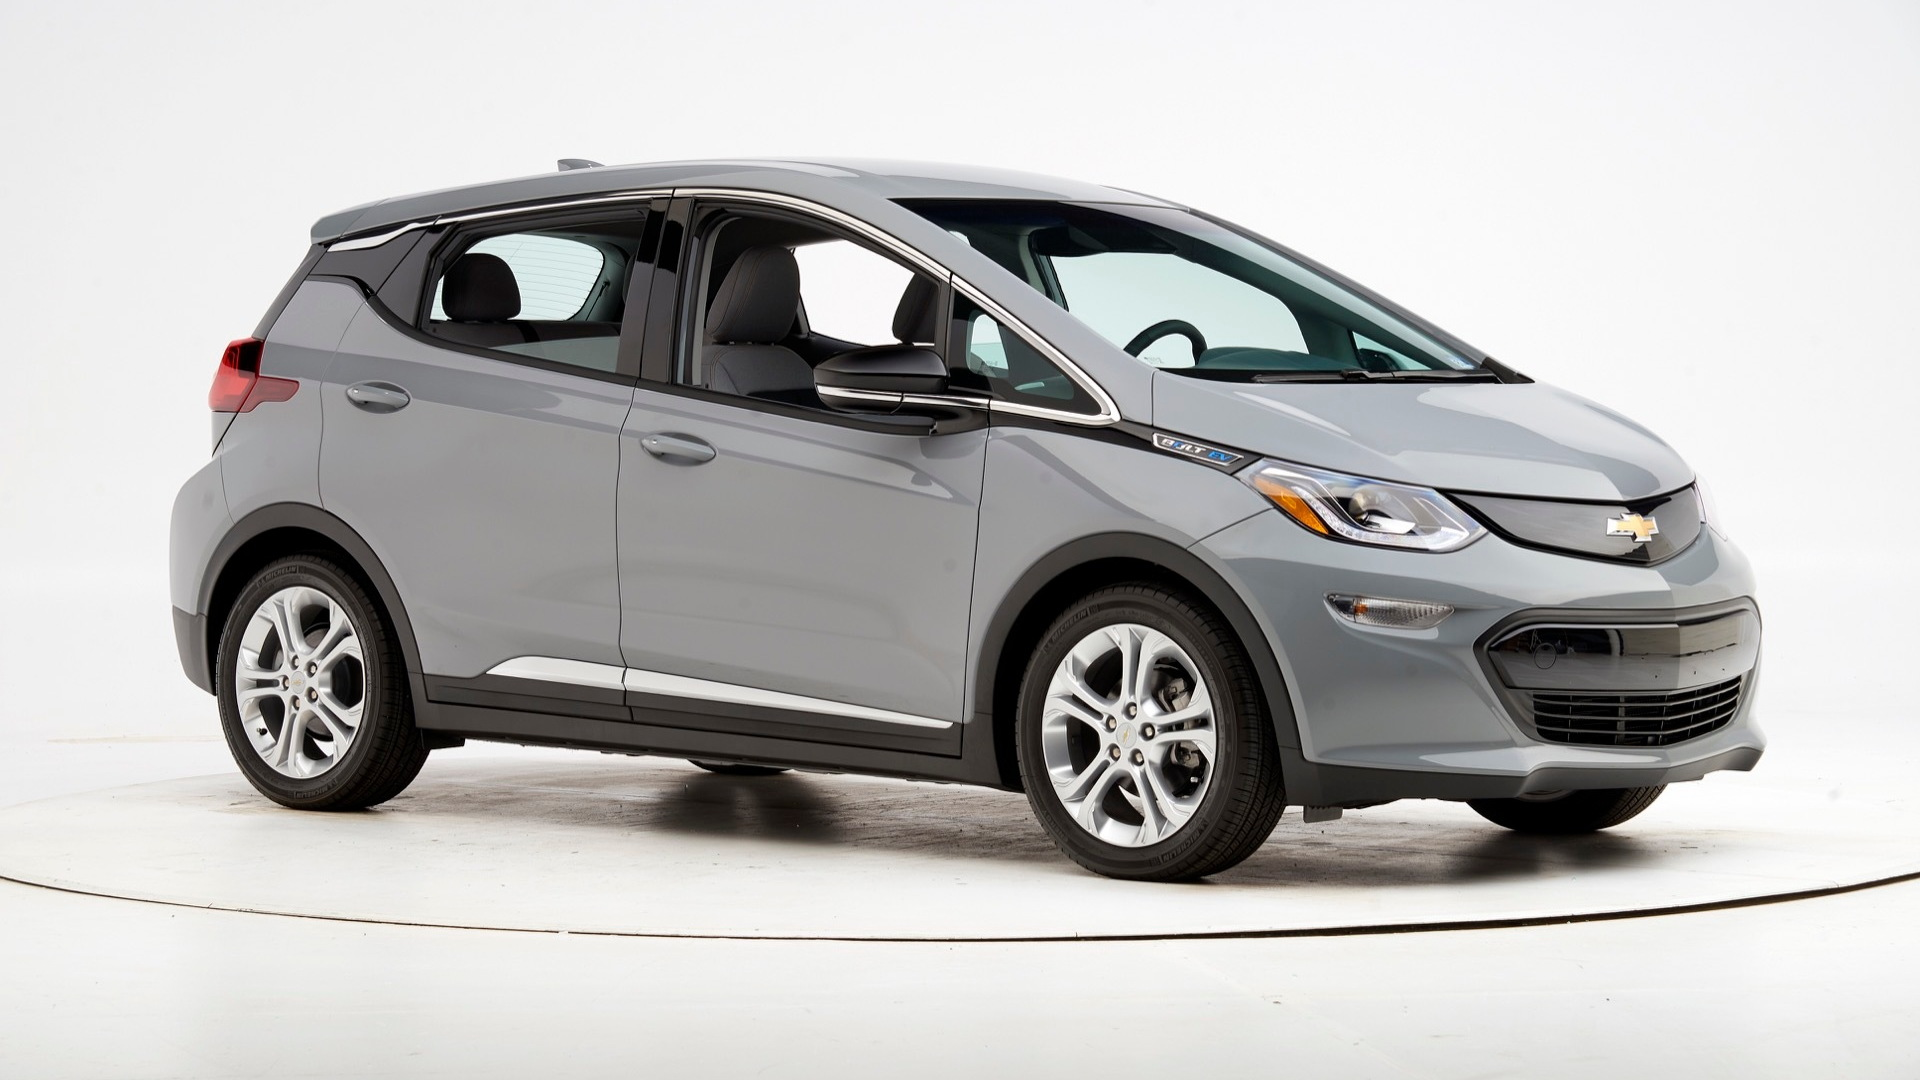 2019 Chevrolet Bolt EV  -  IIHS passenger-side small overlap front test